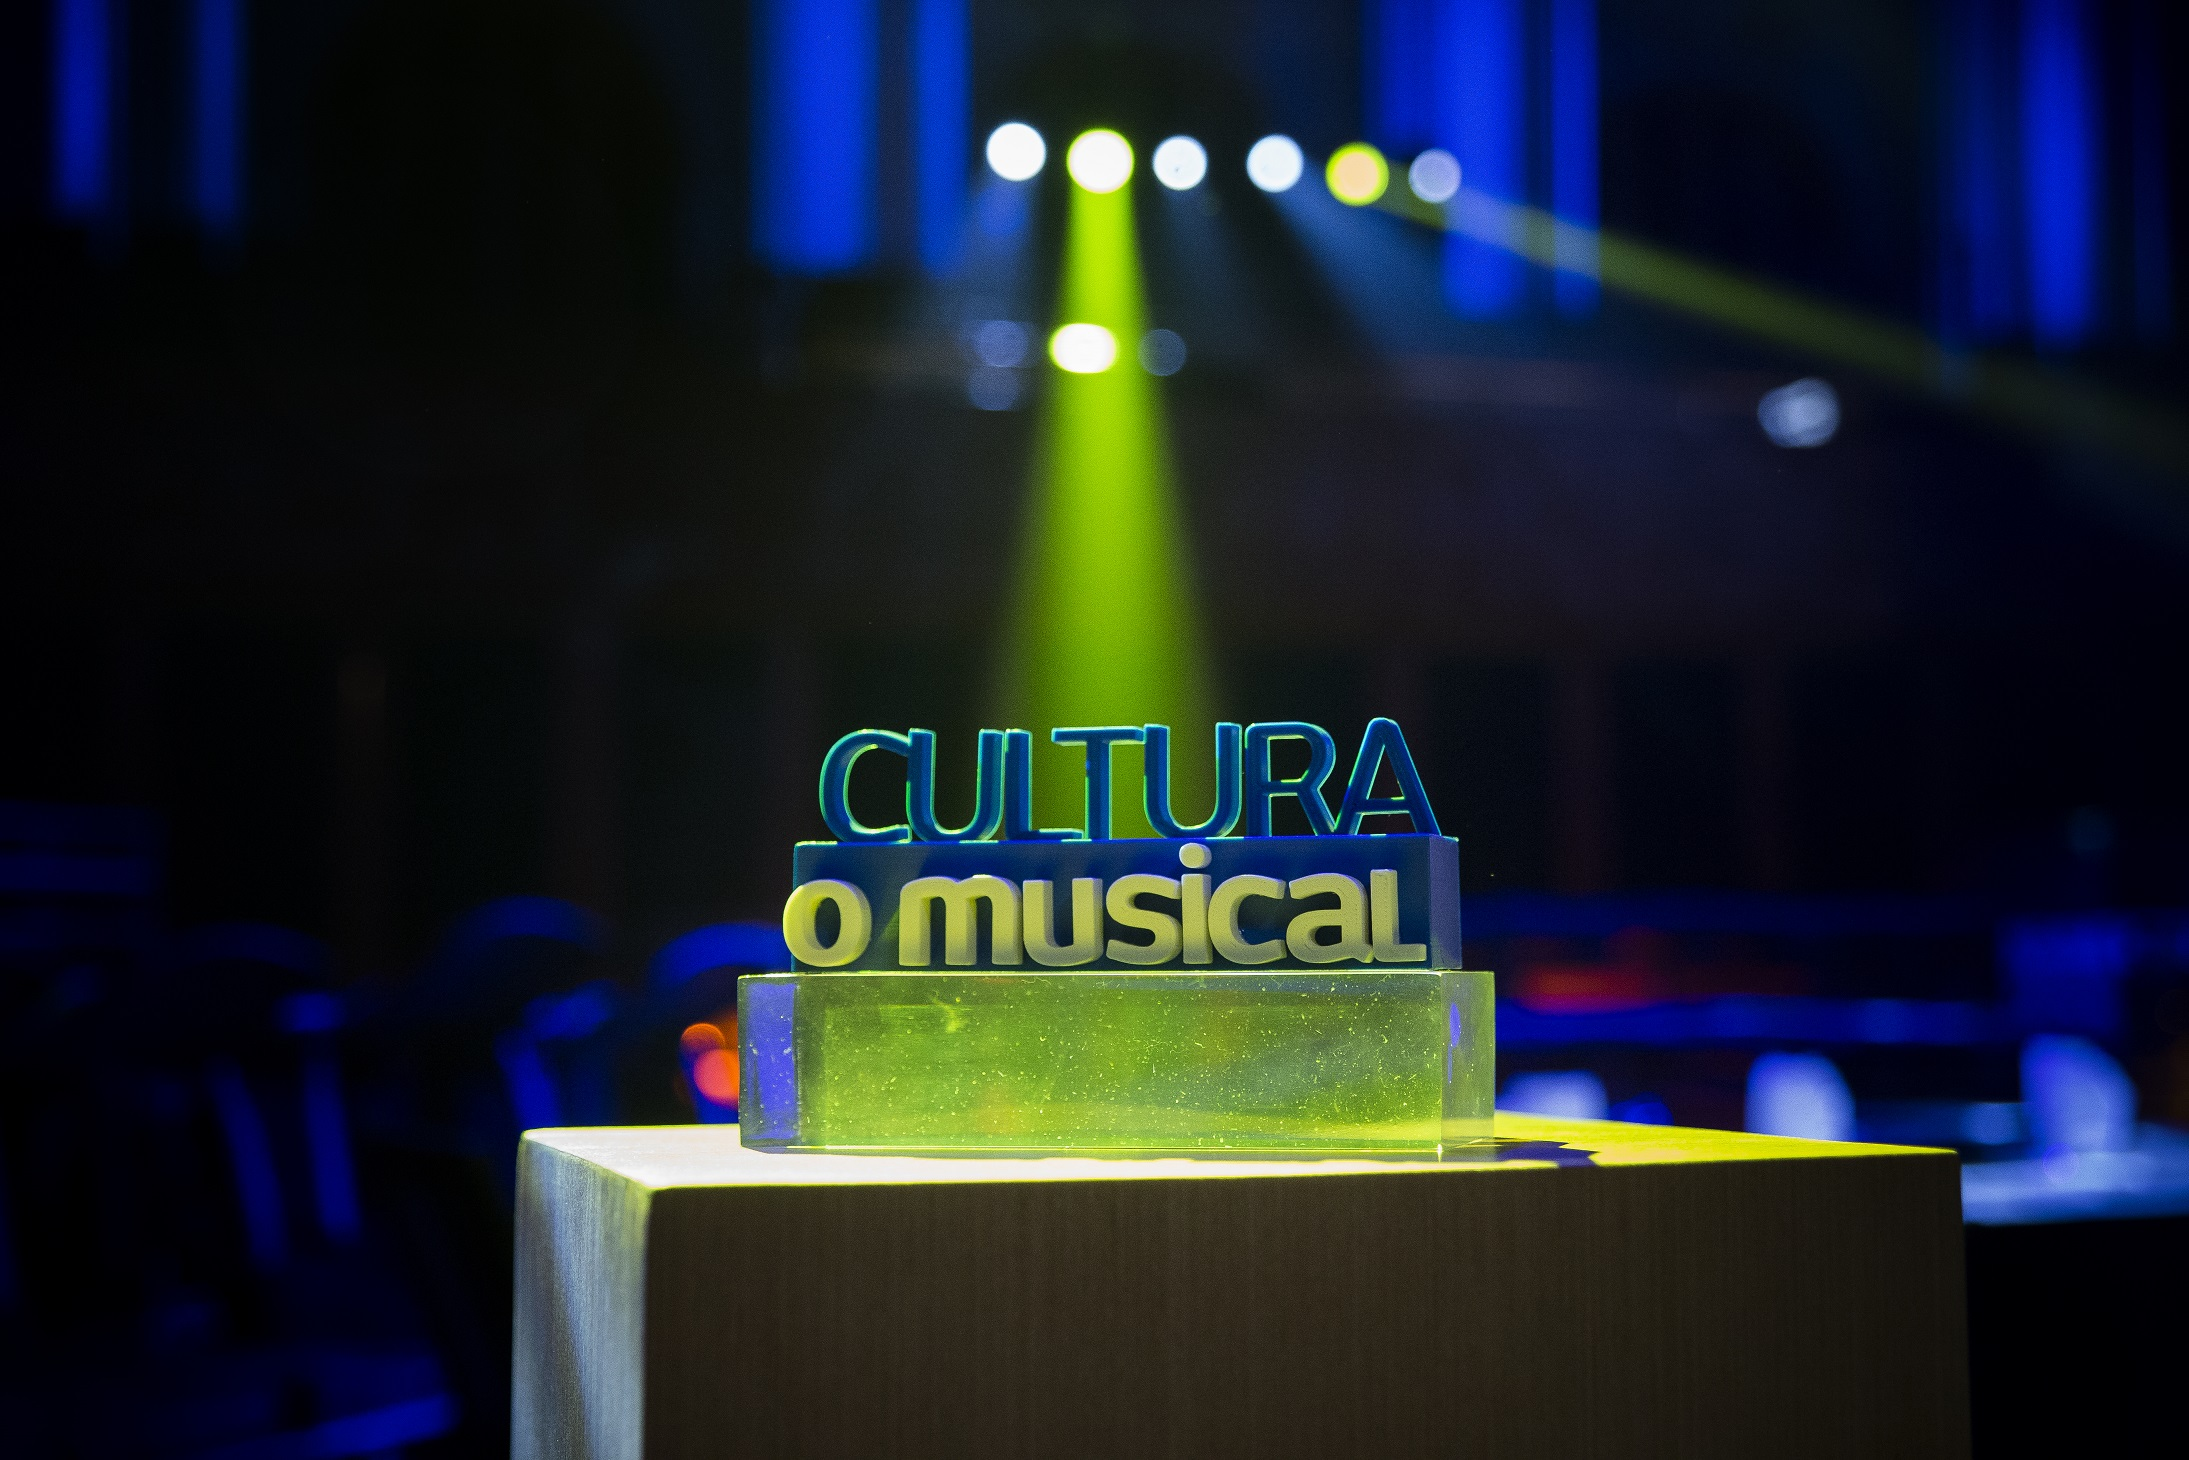 Final do programa Cultura, o Musical vai ao ar neste domingo